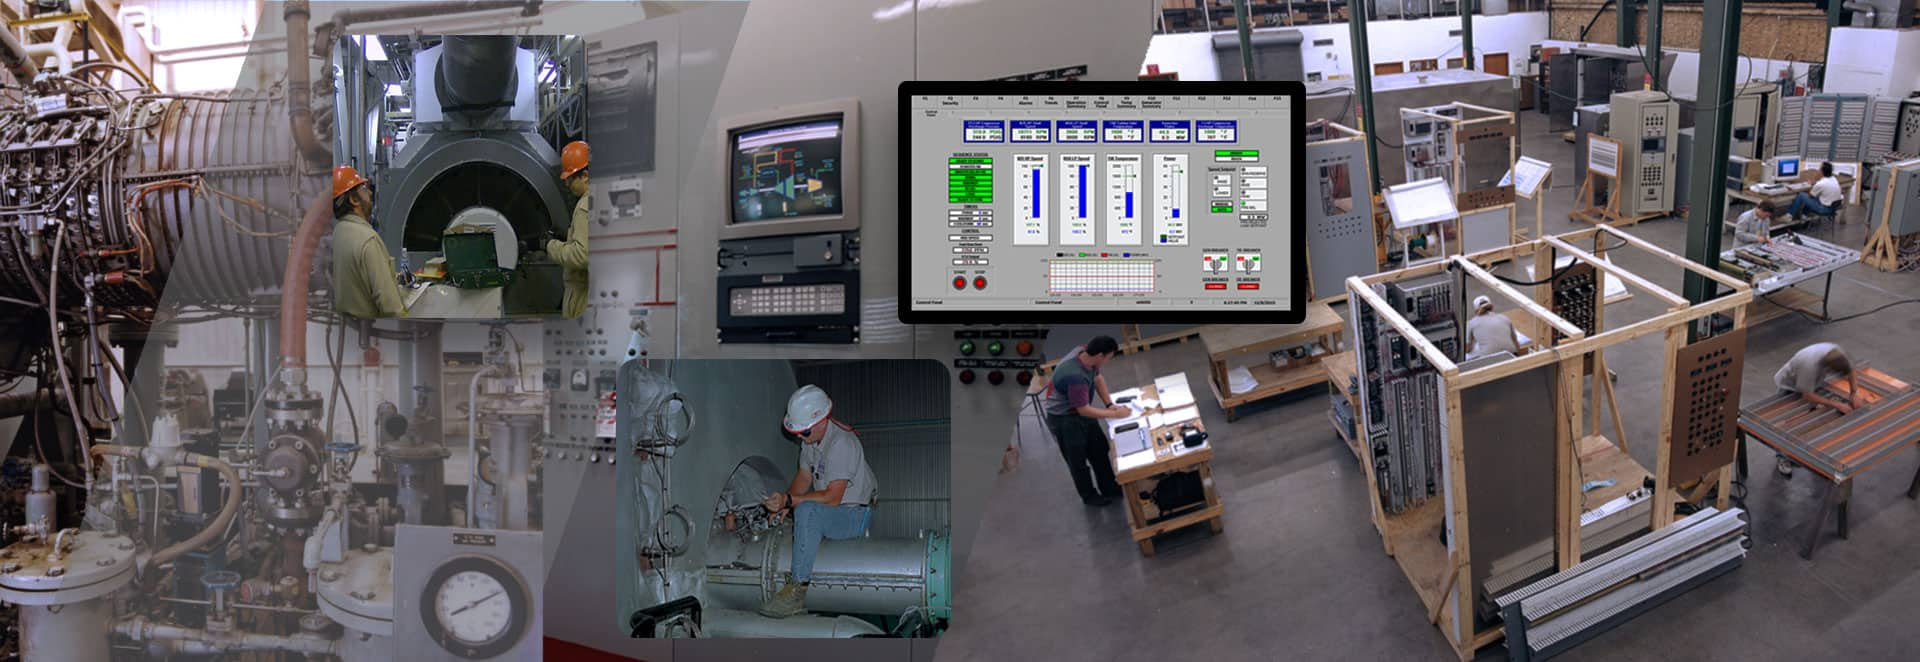 Petrotech Control Systems